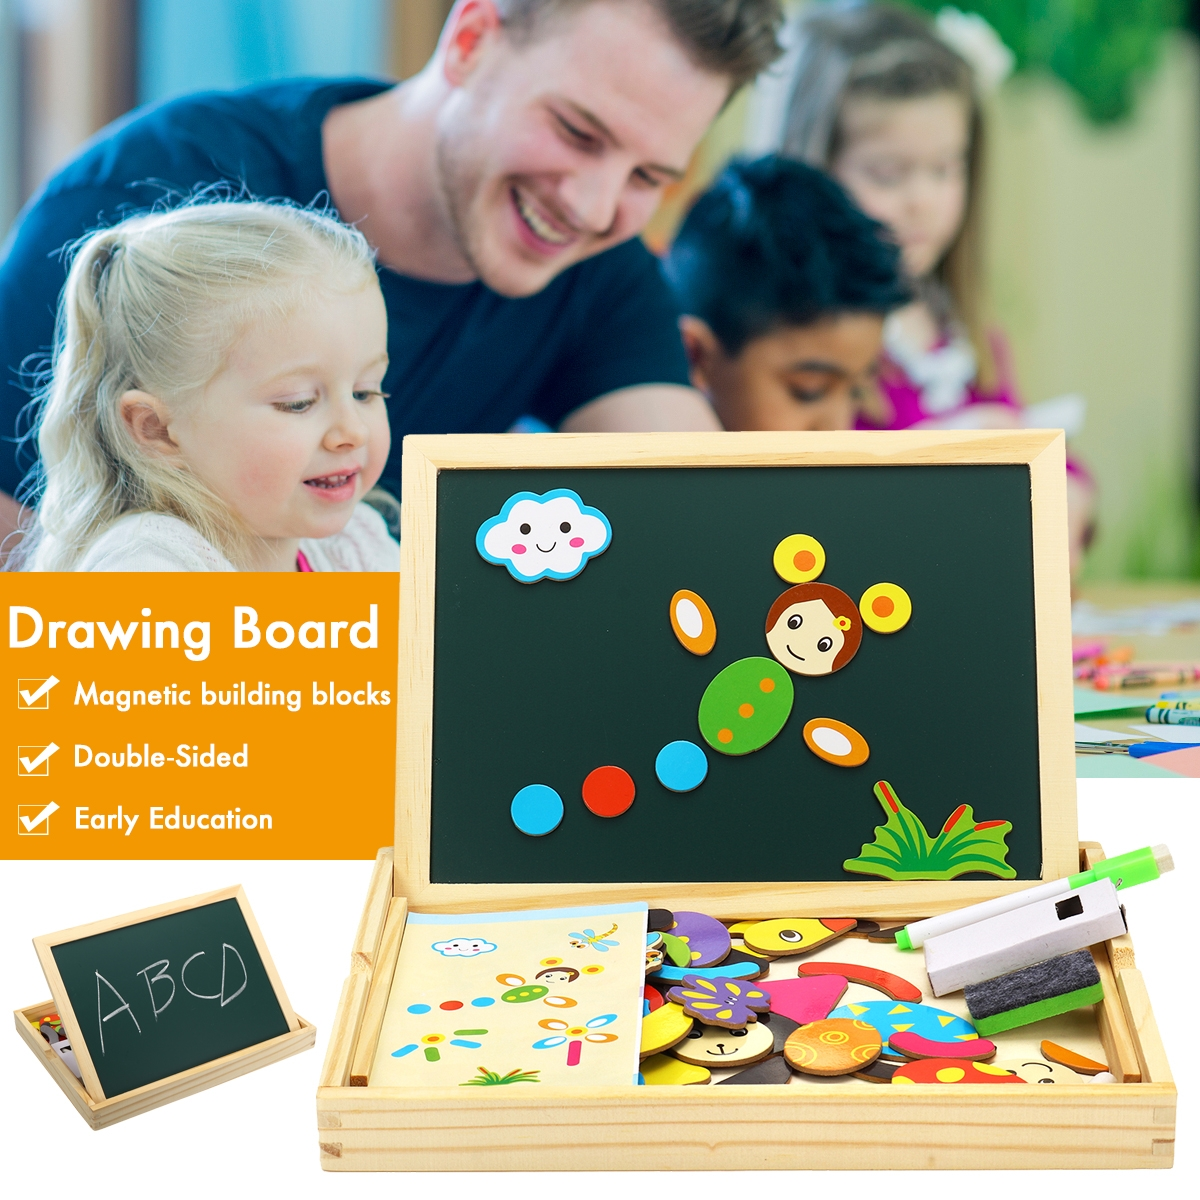 Wooden Magnetic Double-Sided Drawing Board Blocks Children Early Education Toys